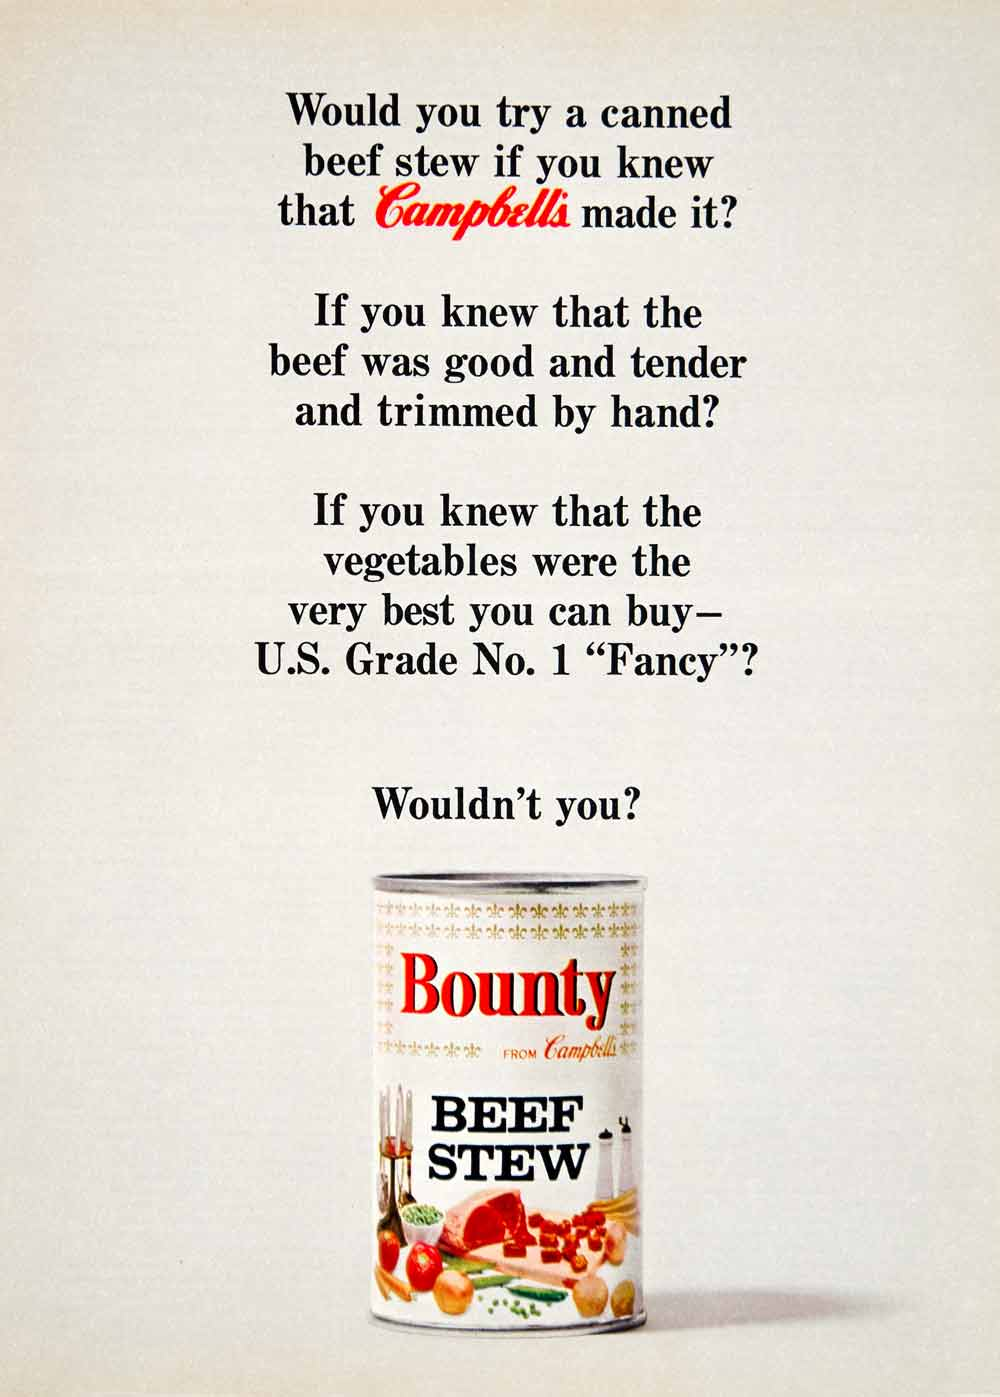 1964 Ad Vintage Campbell's Bounty Beef Stew Canned Food Convenience Tinned YWD2